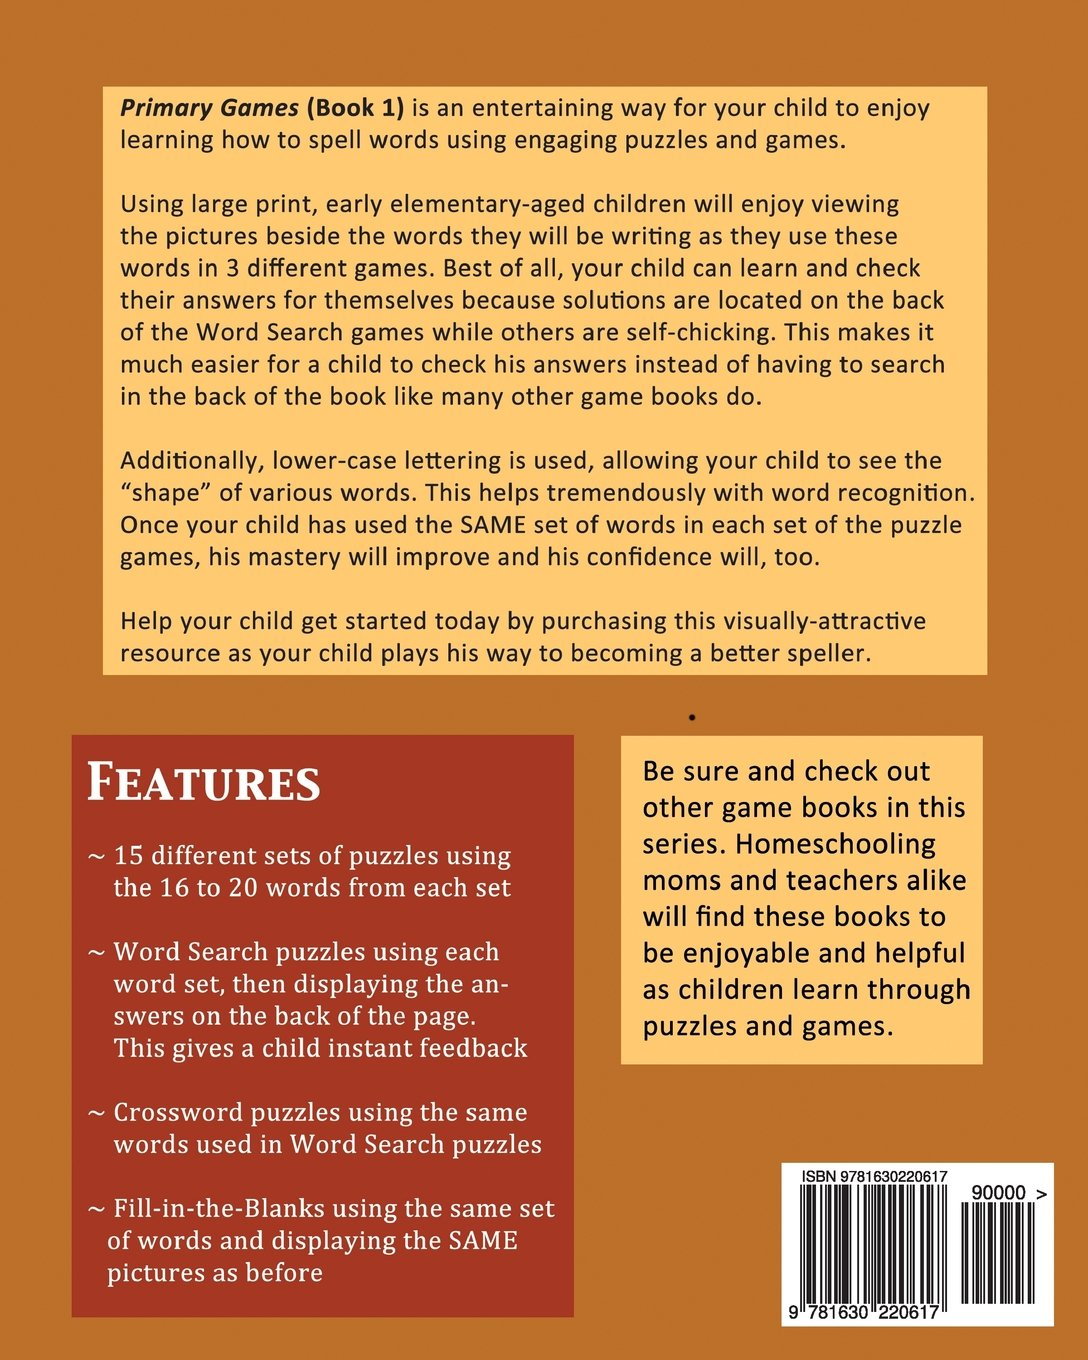 Game with shapes of different colors crossword - Primary Games Book 1 Crossword Puzzles Word Search And Fill In The Blanks Spelling Games For Elementary Ages 6 8 Volume 1 Carol Kidd 9781630220617